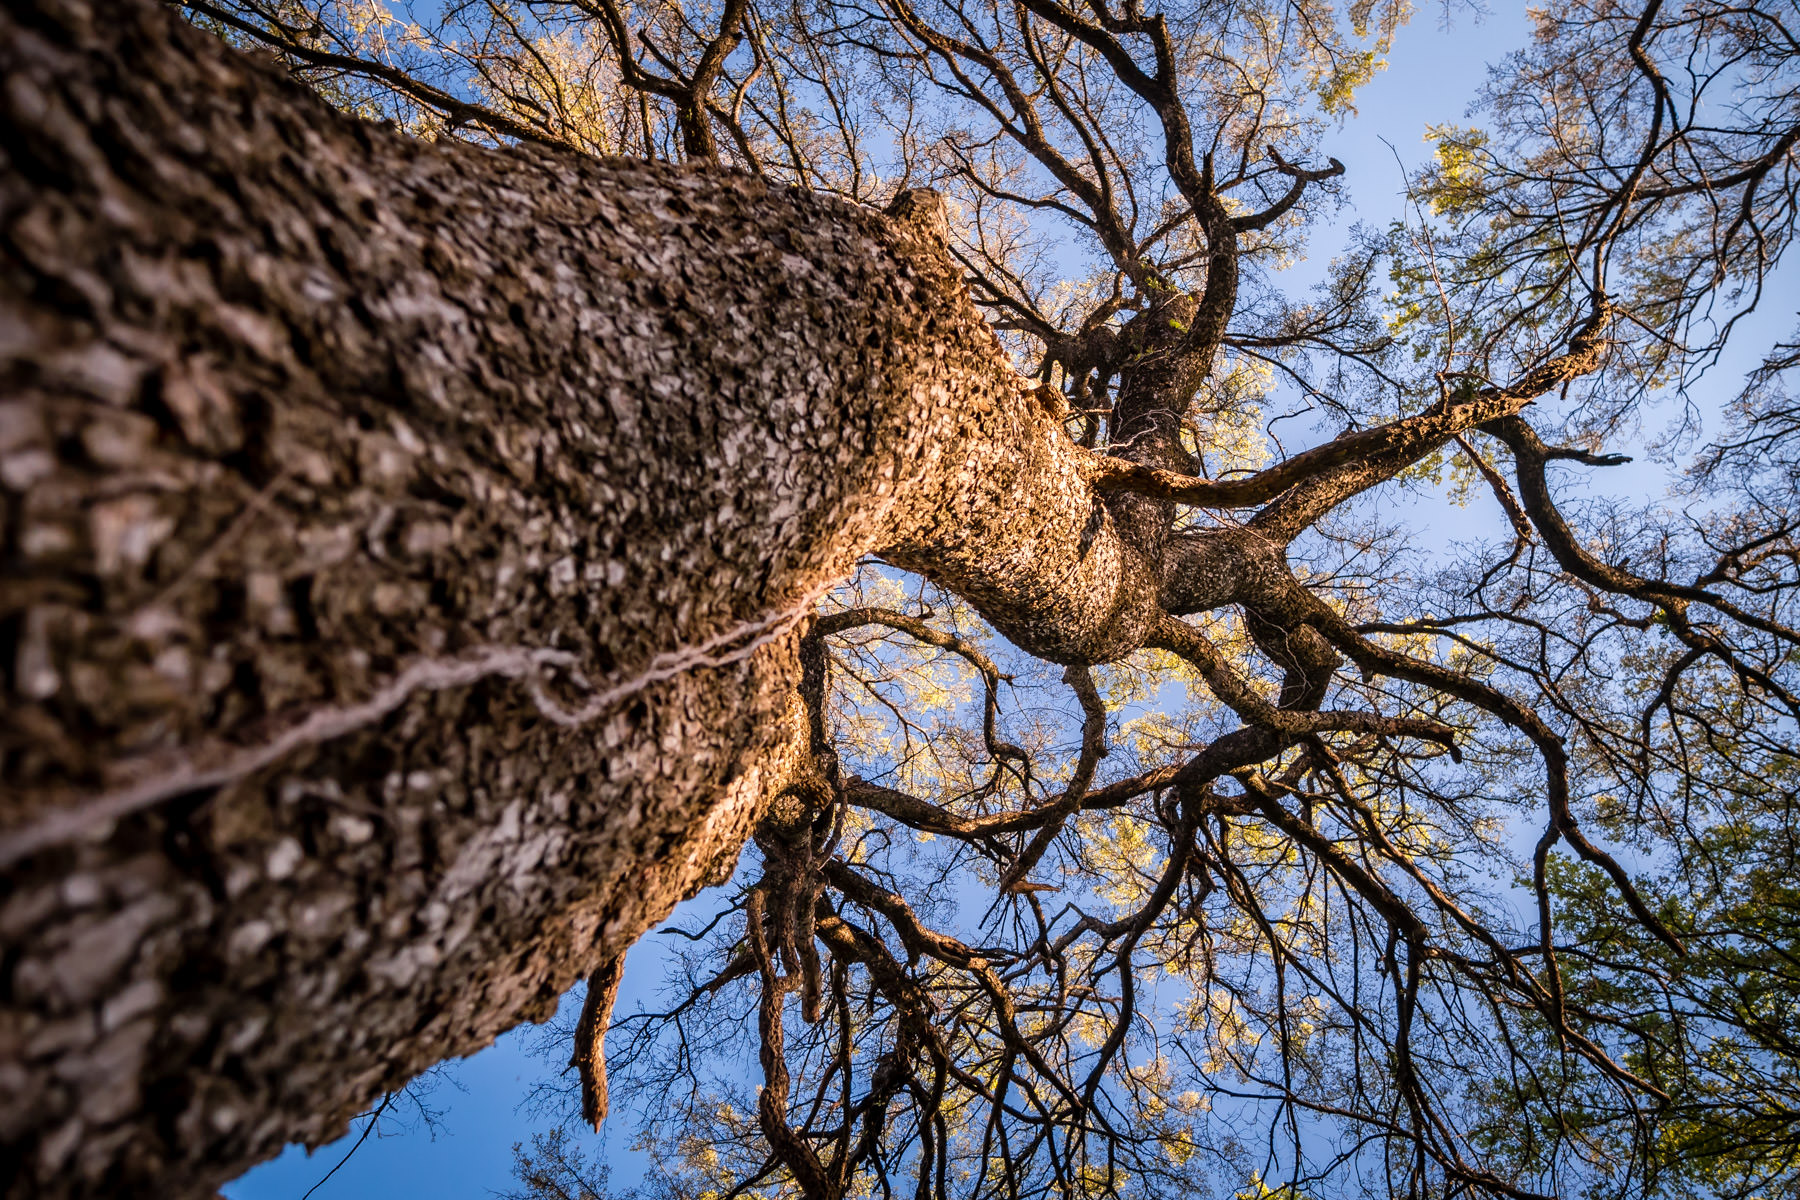 A tree in Dallas' Great Trinity Forest reaches into the clear blue North Texas sky.